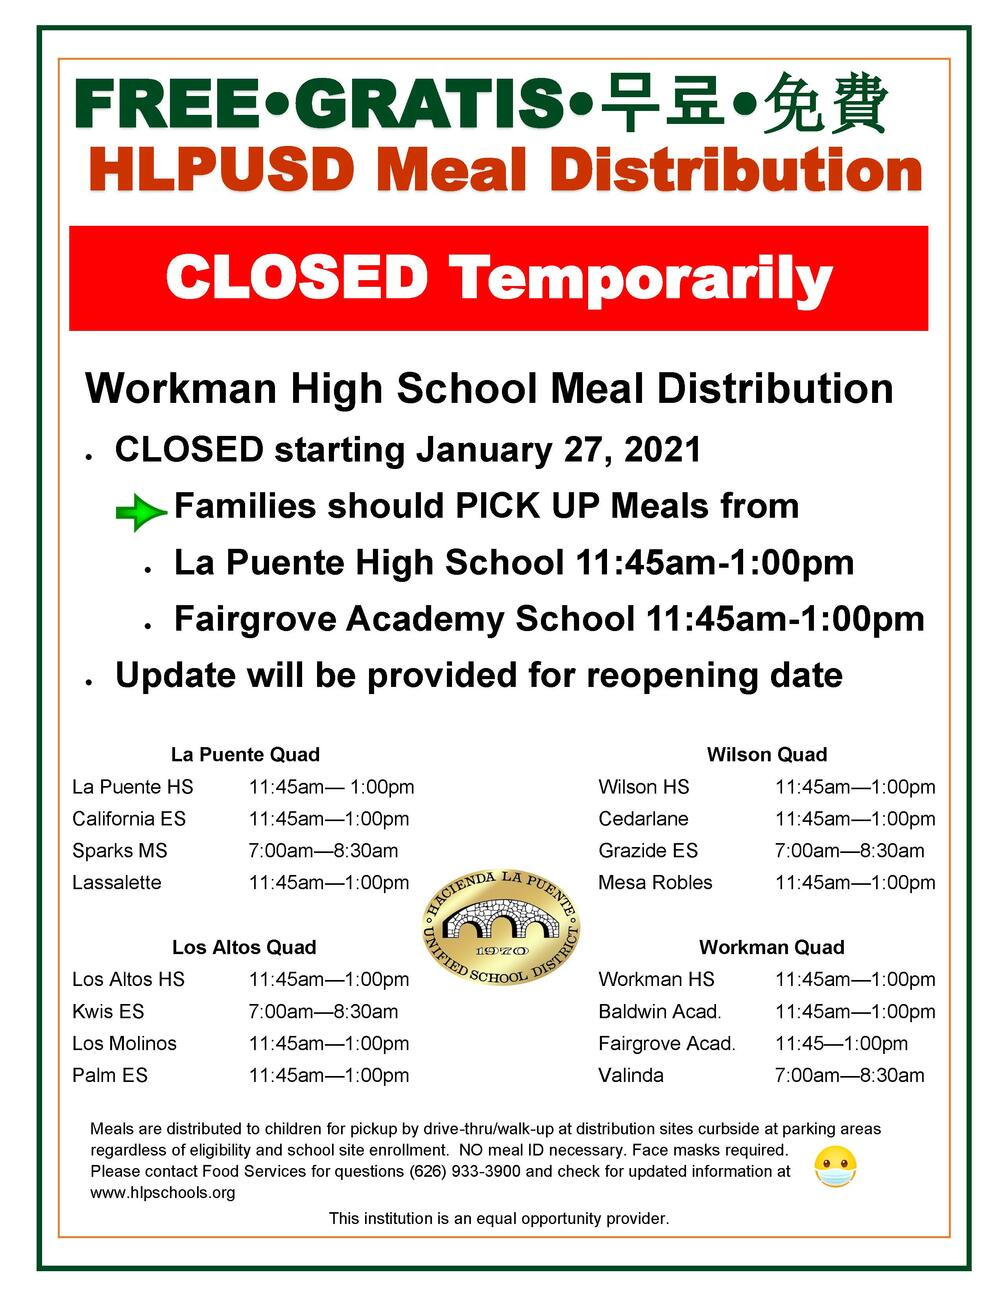 Workman HS closed